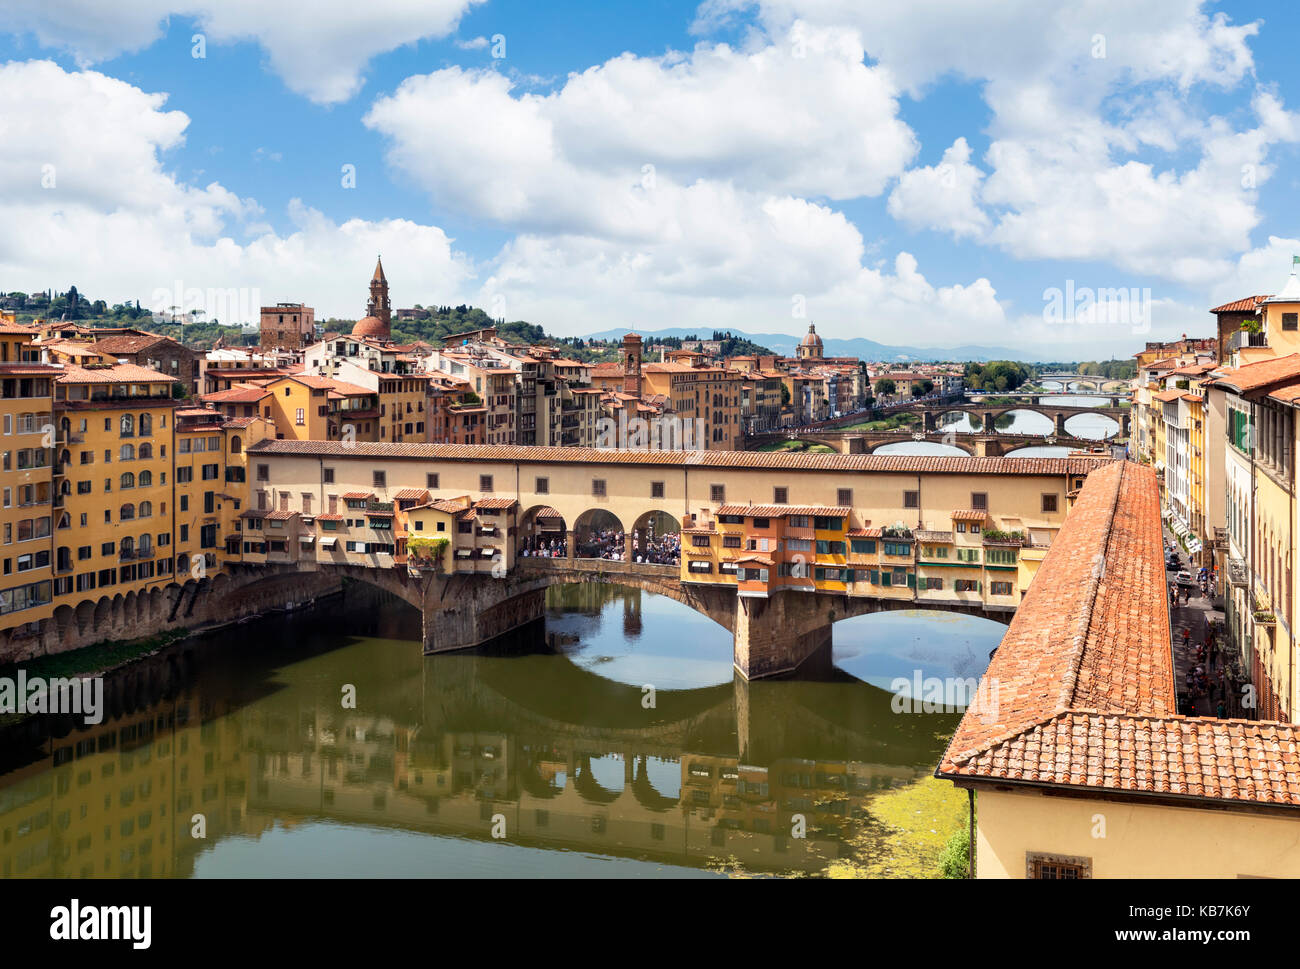 View of the Ponte Vecchio and River Arno from the Uffizi Gallery, Florence, Italy. - Stock Image